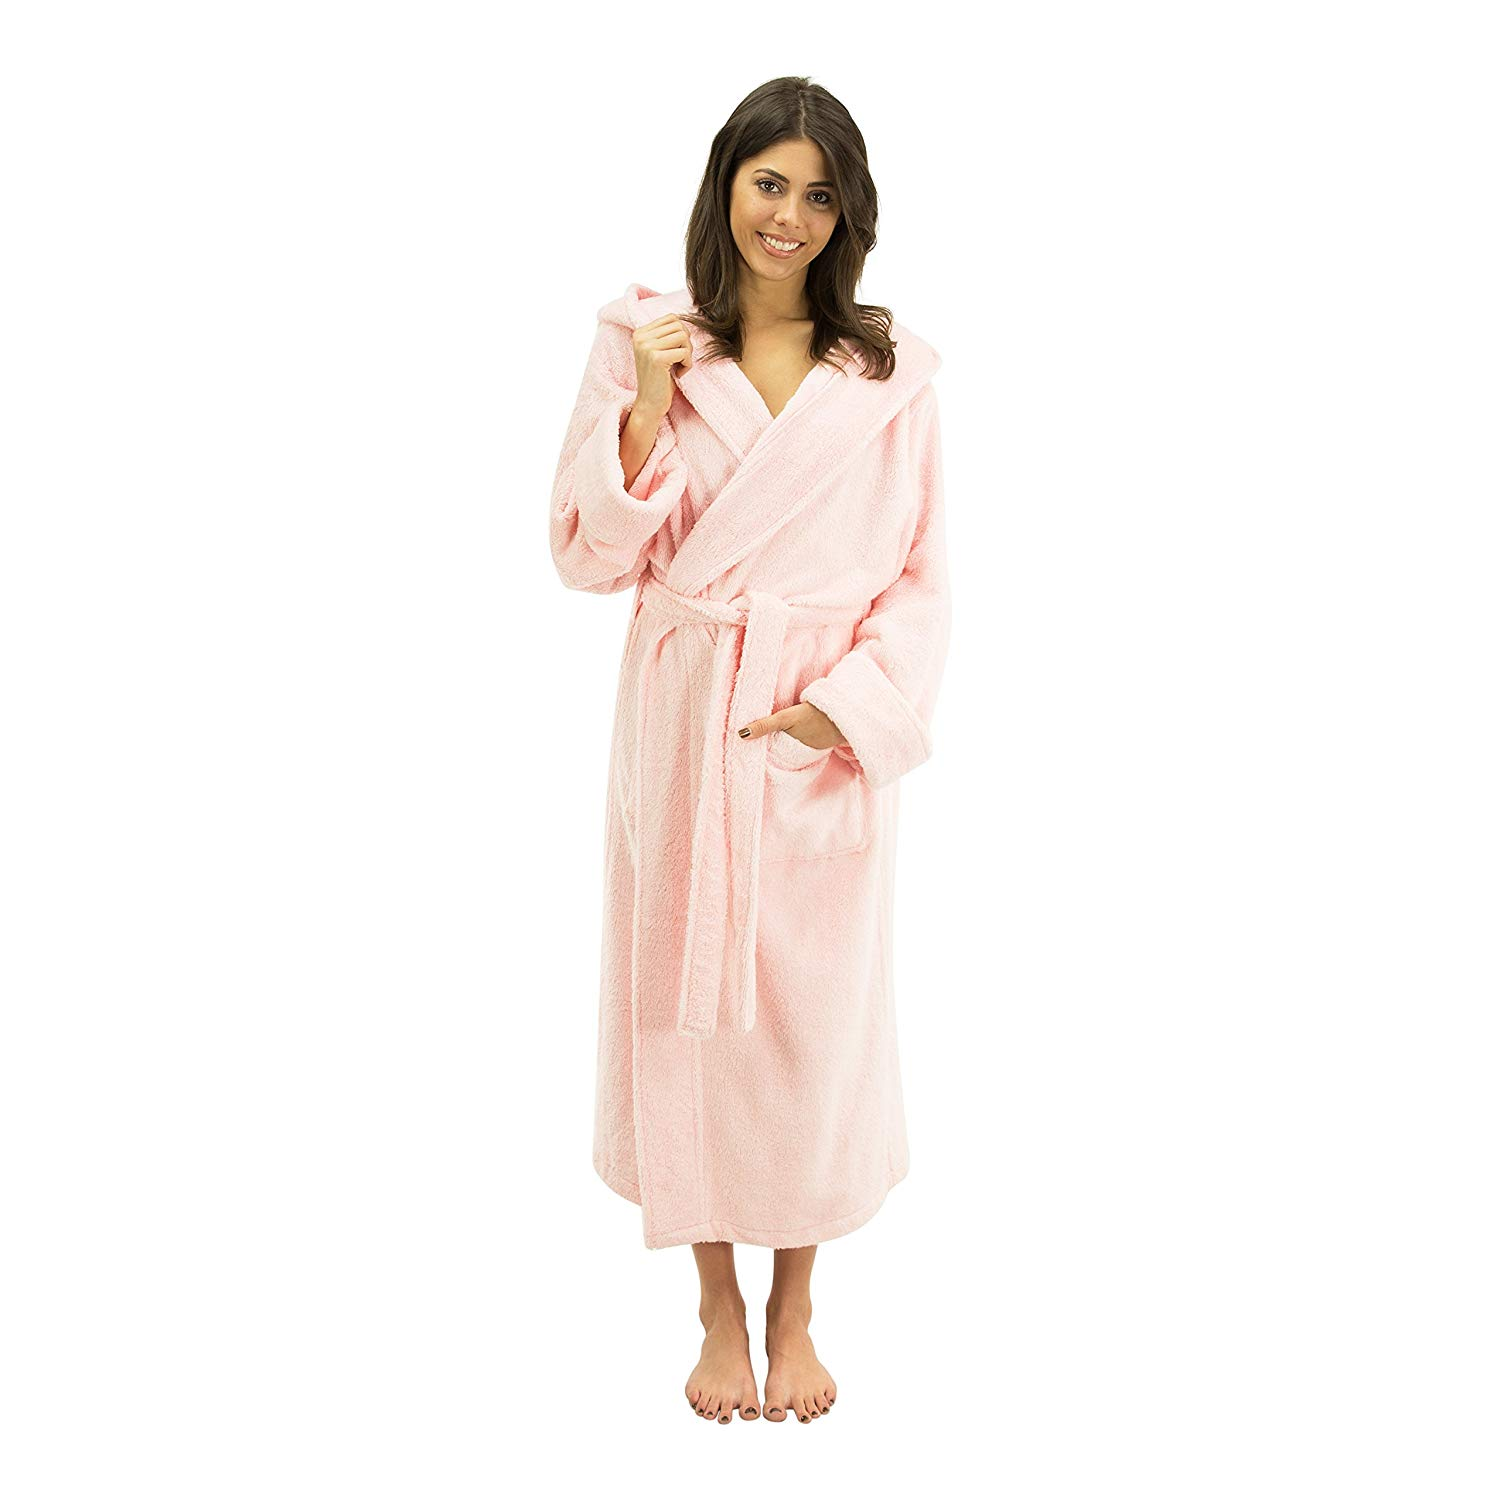 2561604eda Get Quotations · Comfy Robes Women s Bamboo Hooded Robe